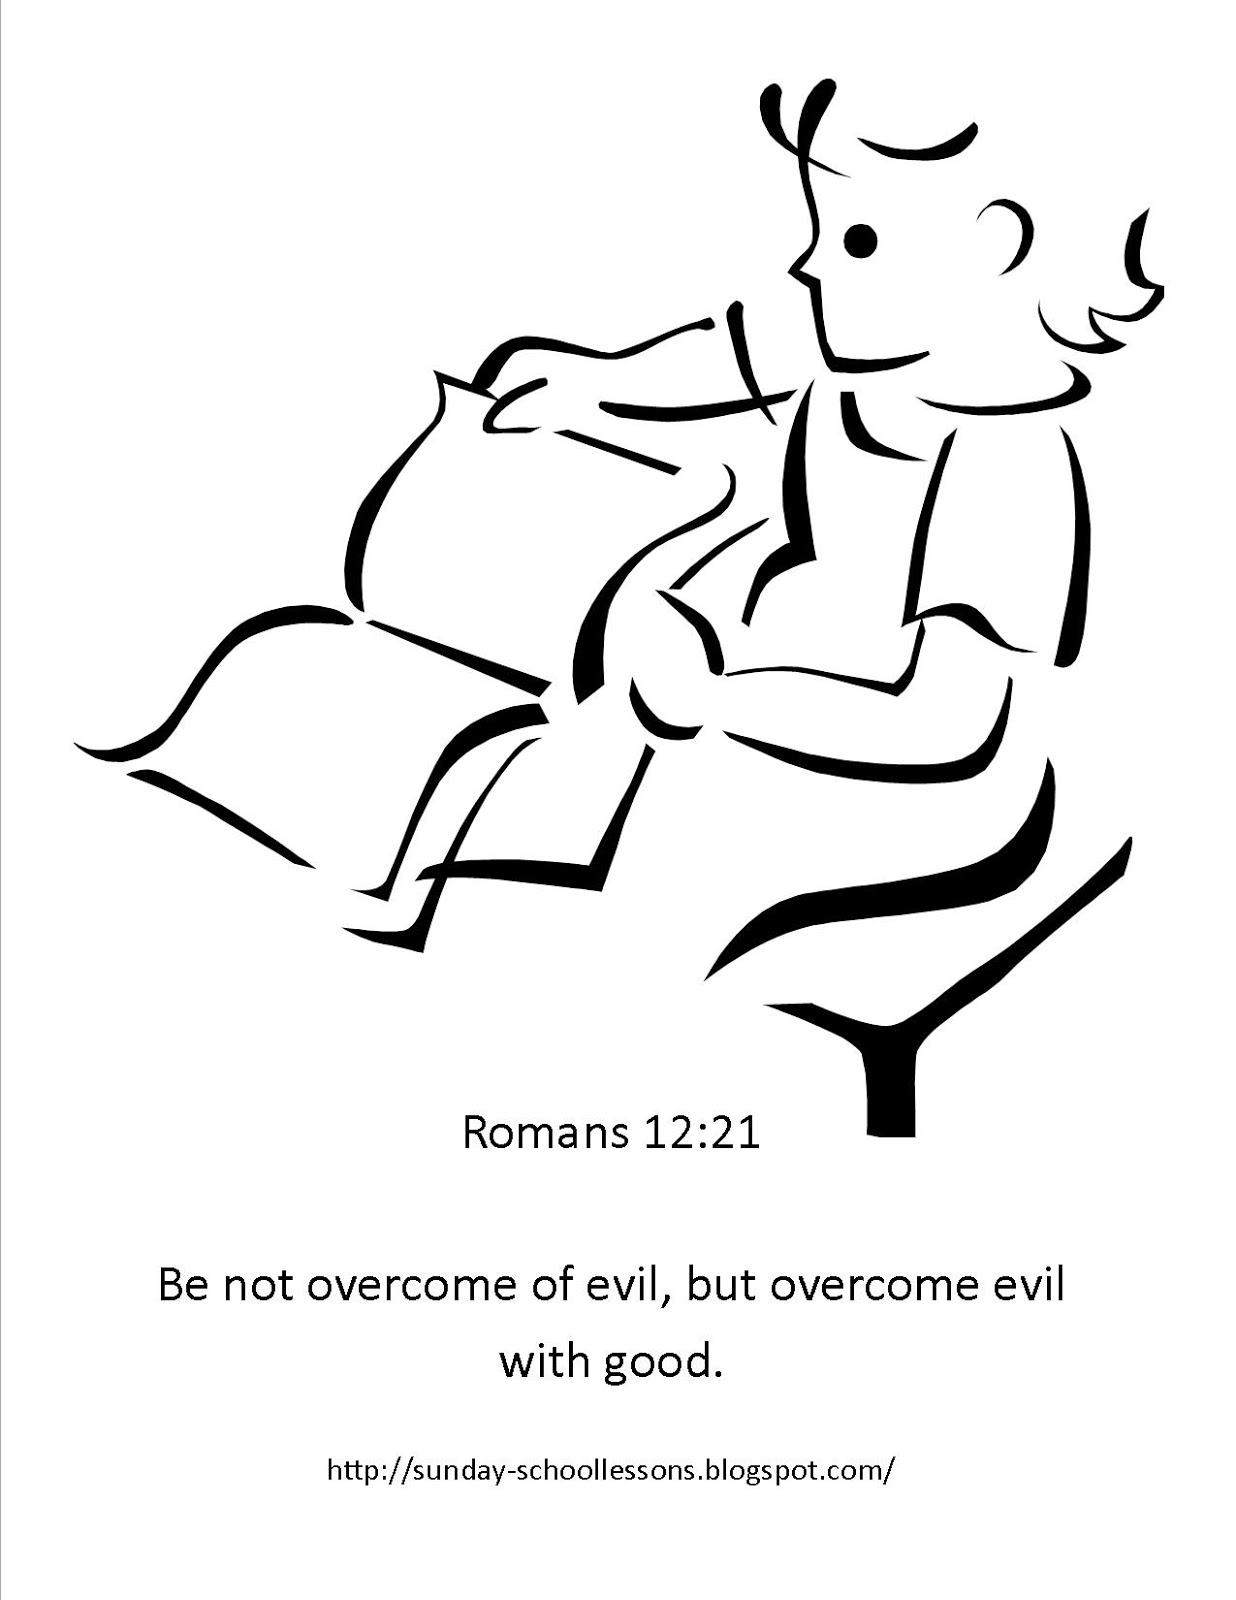 Sunday School Lessons of Plenty: Romans 12 Coloring Page